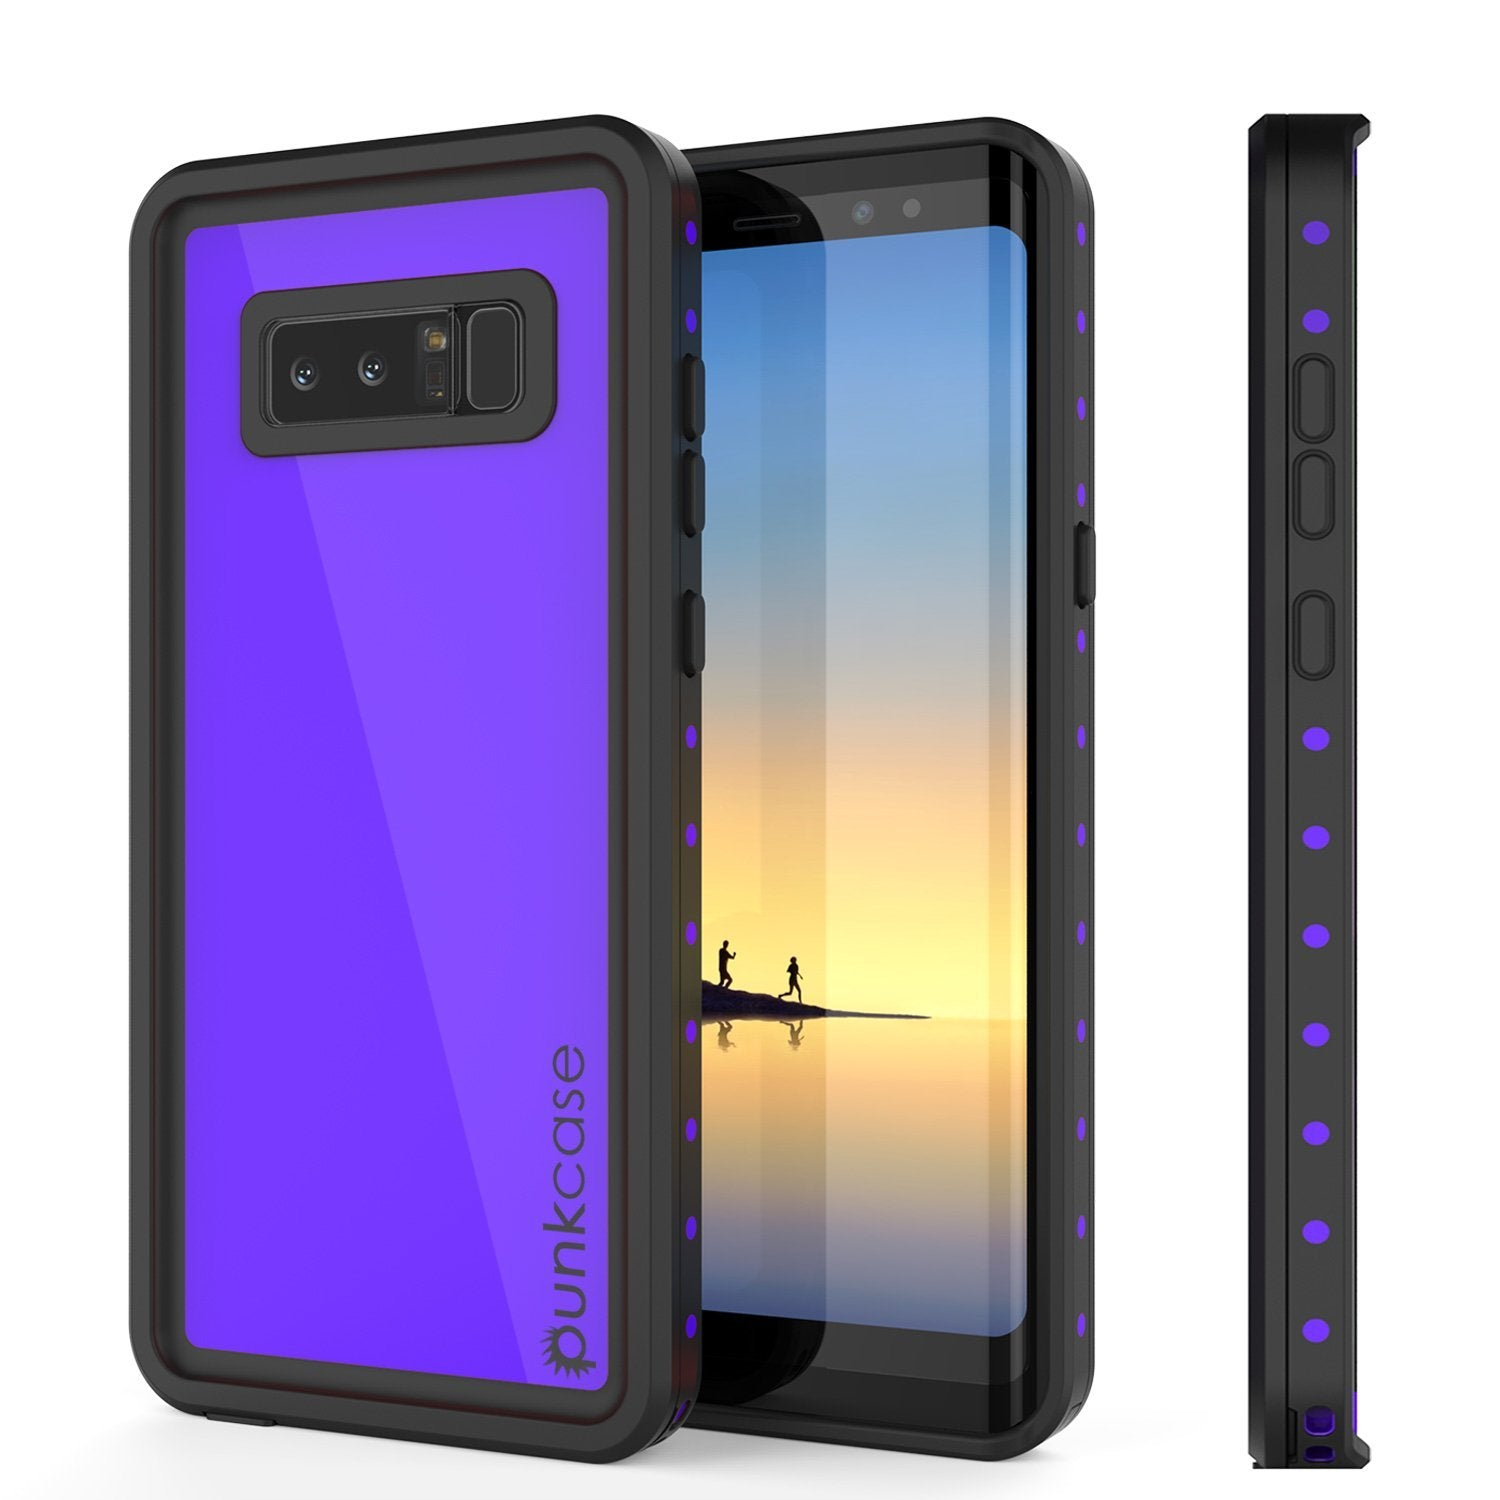 Note 8 Waterproof Case PunkCase StudStar Purple Thin 6.6ft Underwater IP68 Shock/Snow Proof